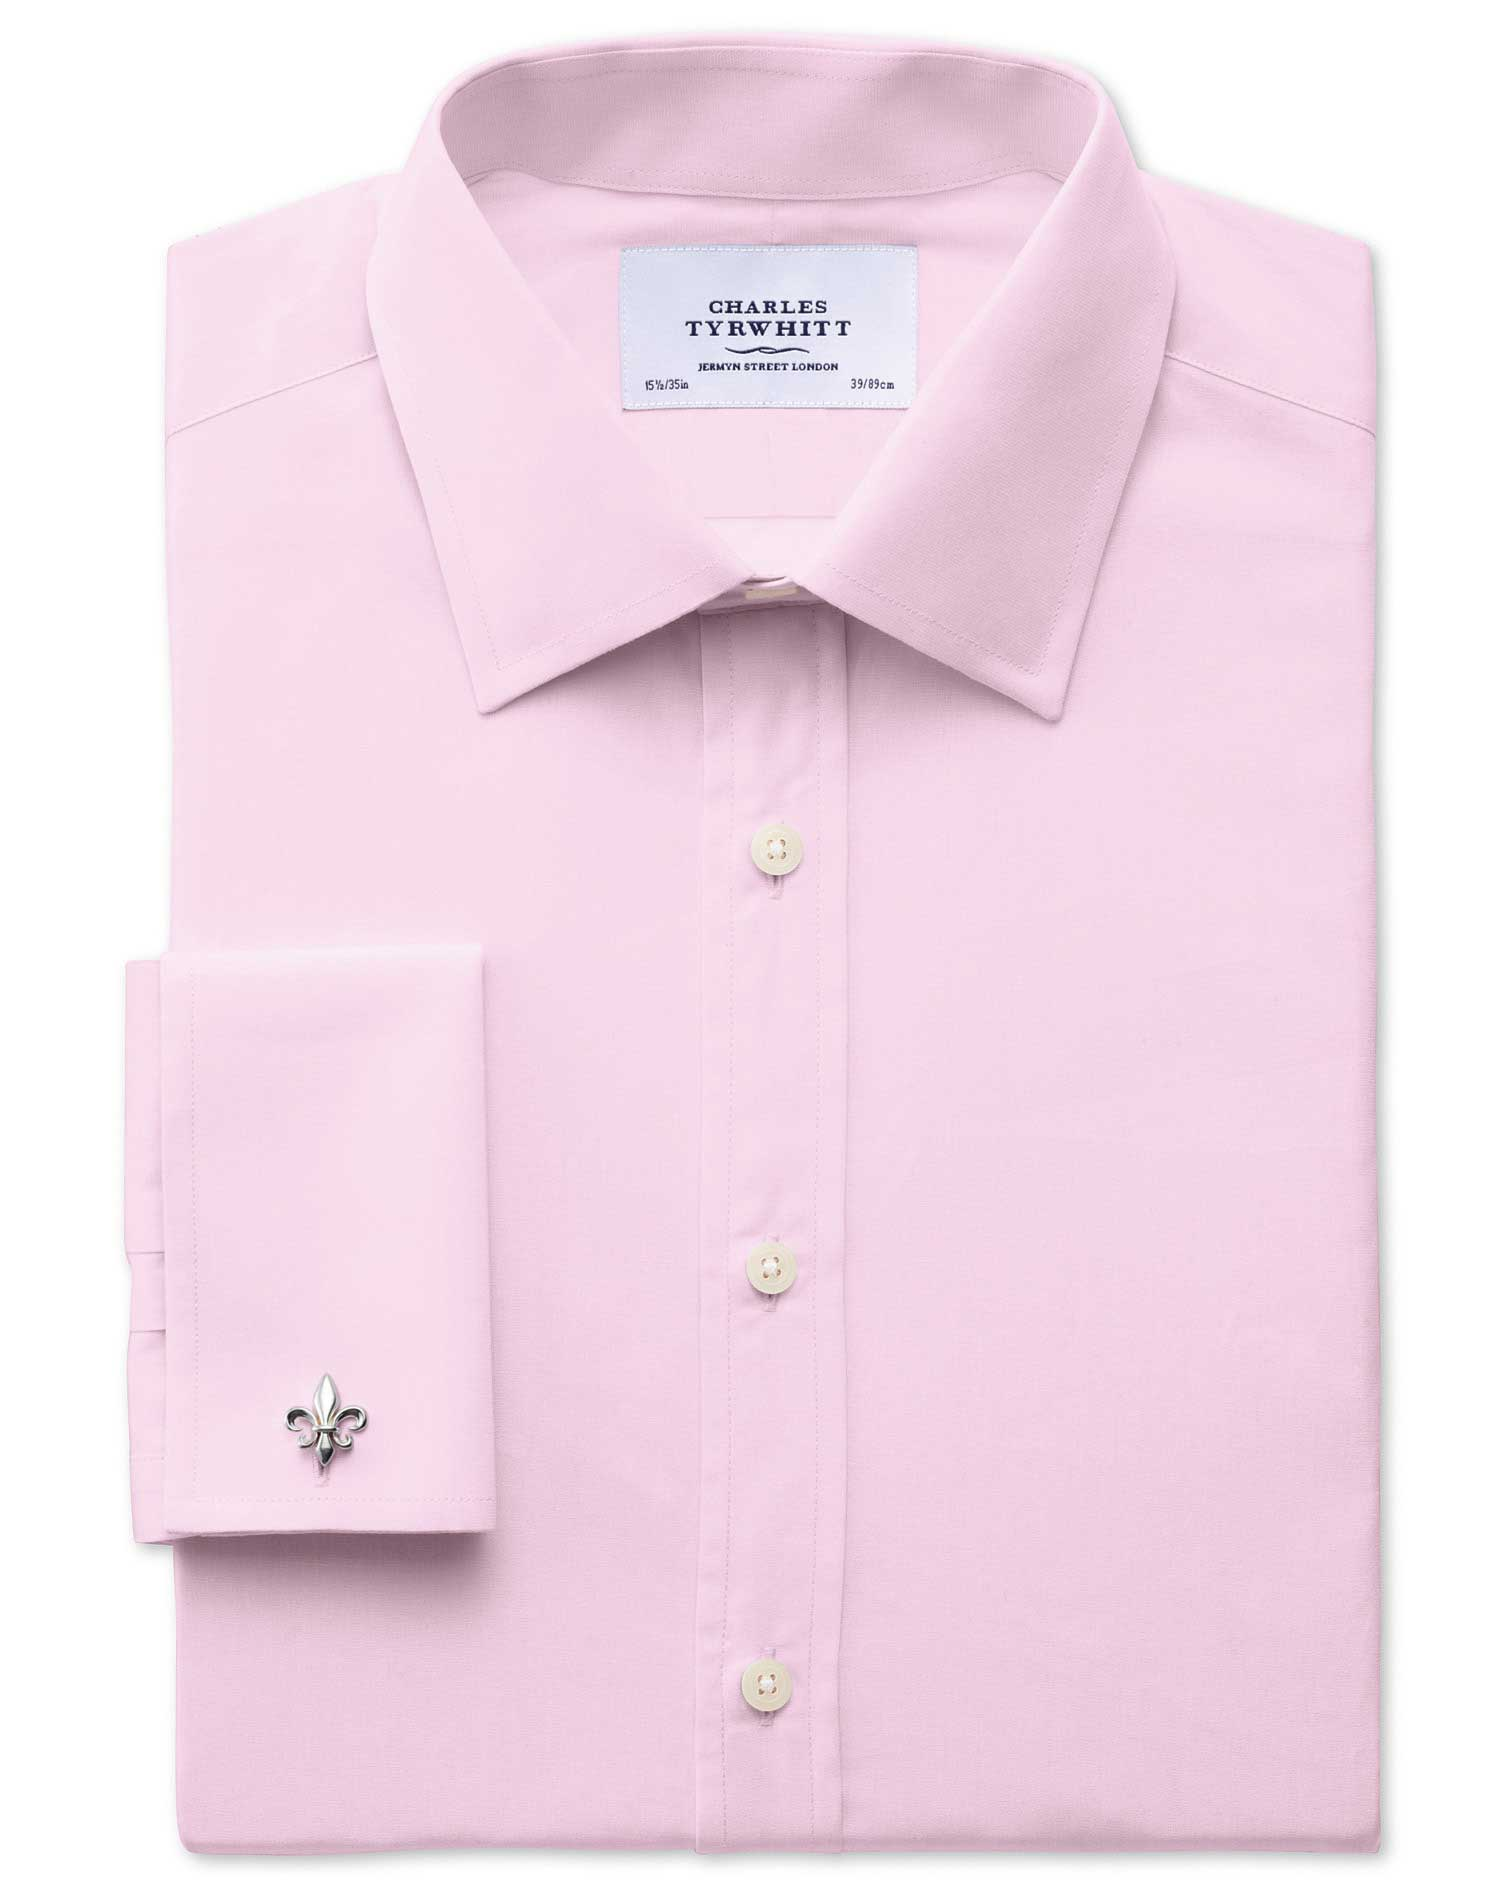 Classic Fit End-On-End Pink Cotton Formal Shirt Single Cuff Size 16.5/38 by Charles Tyrwhitt